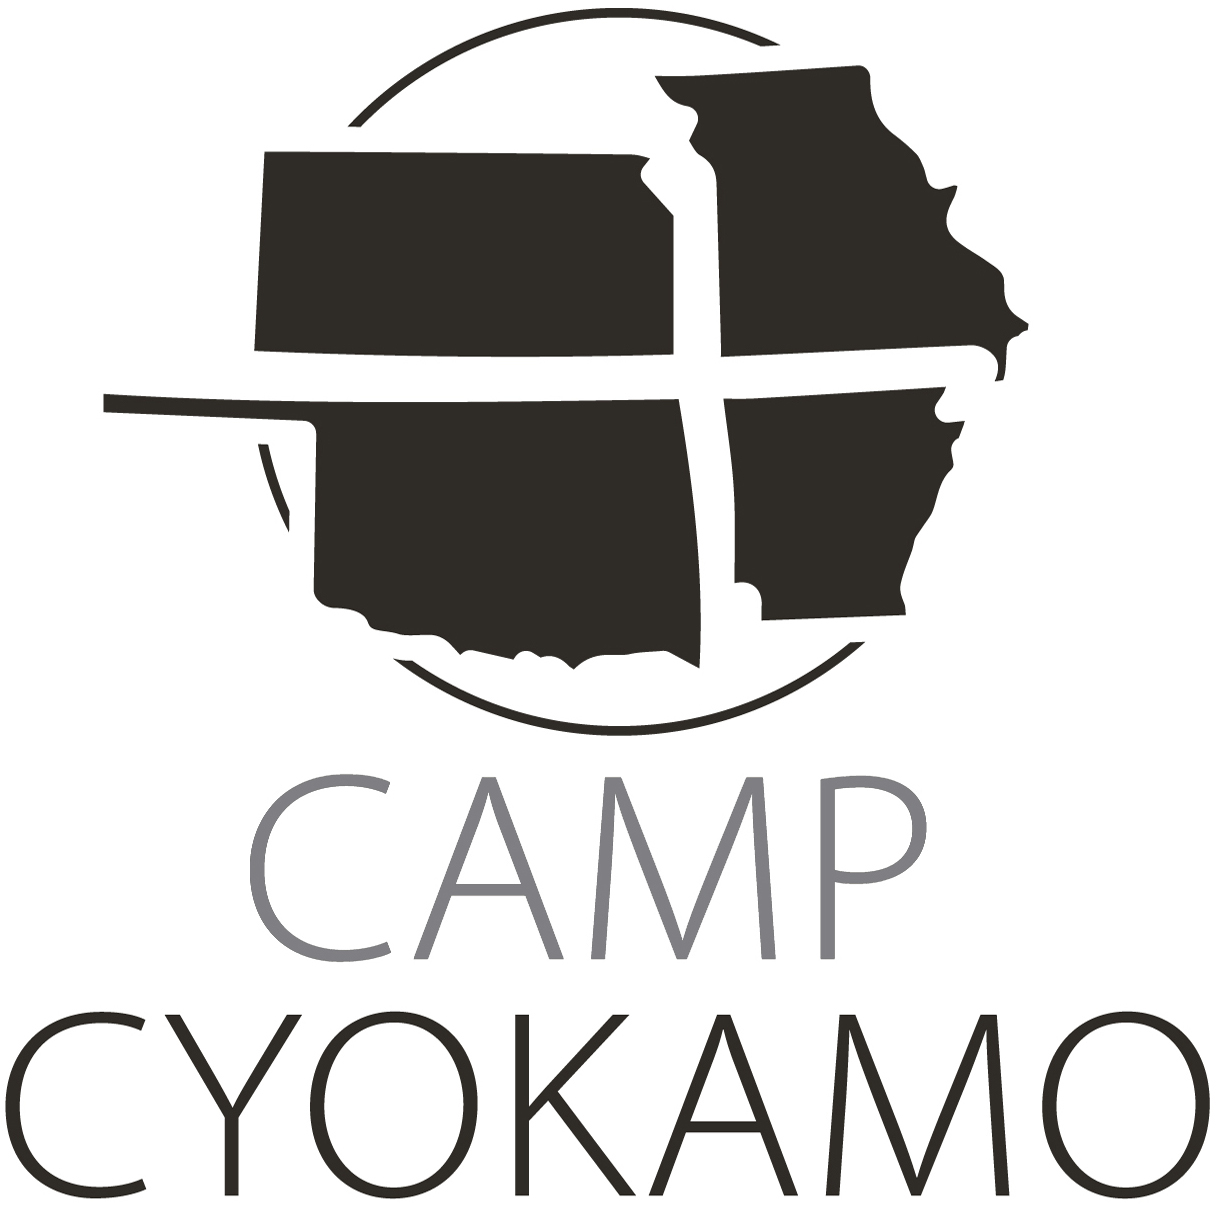 Camp Cyokamo Stacked Centered (gray).jpg